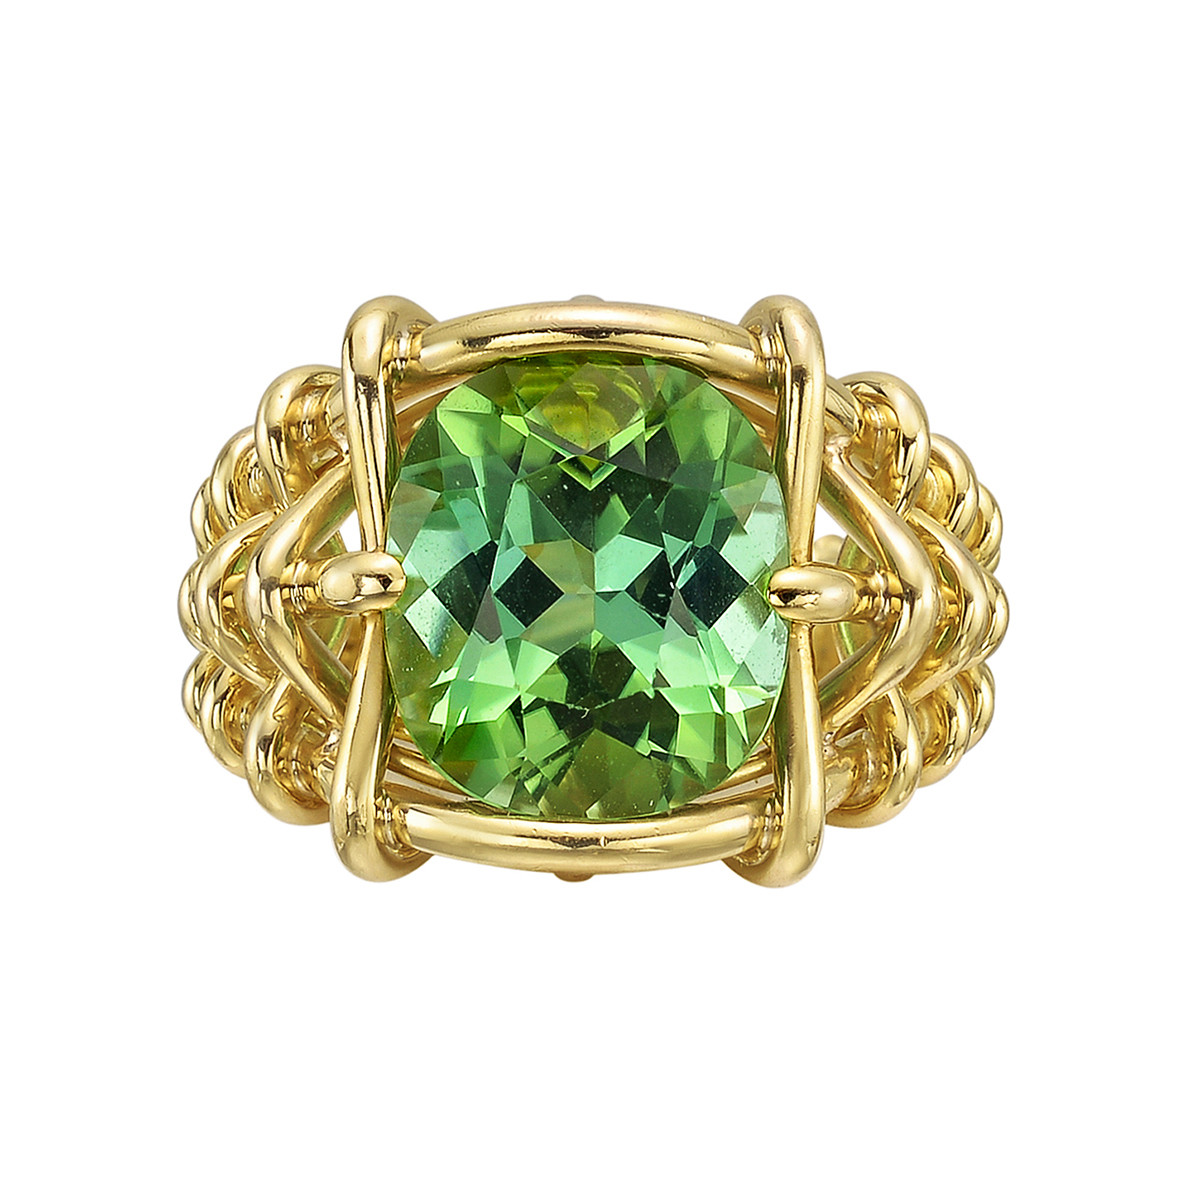 5.05ct Mint Tourmaline Basketweave Ring